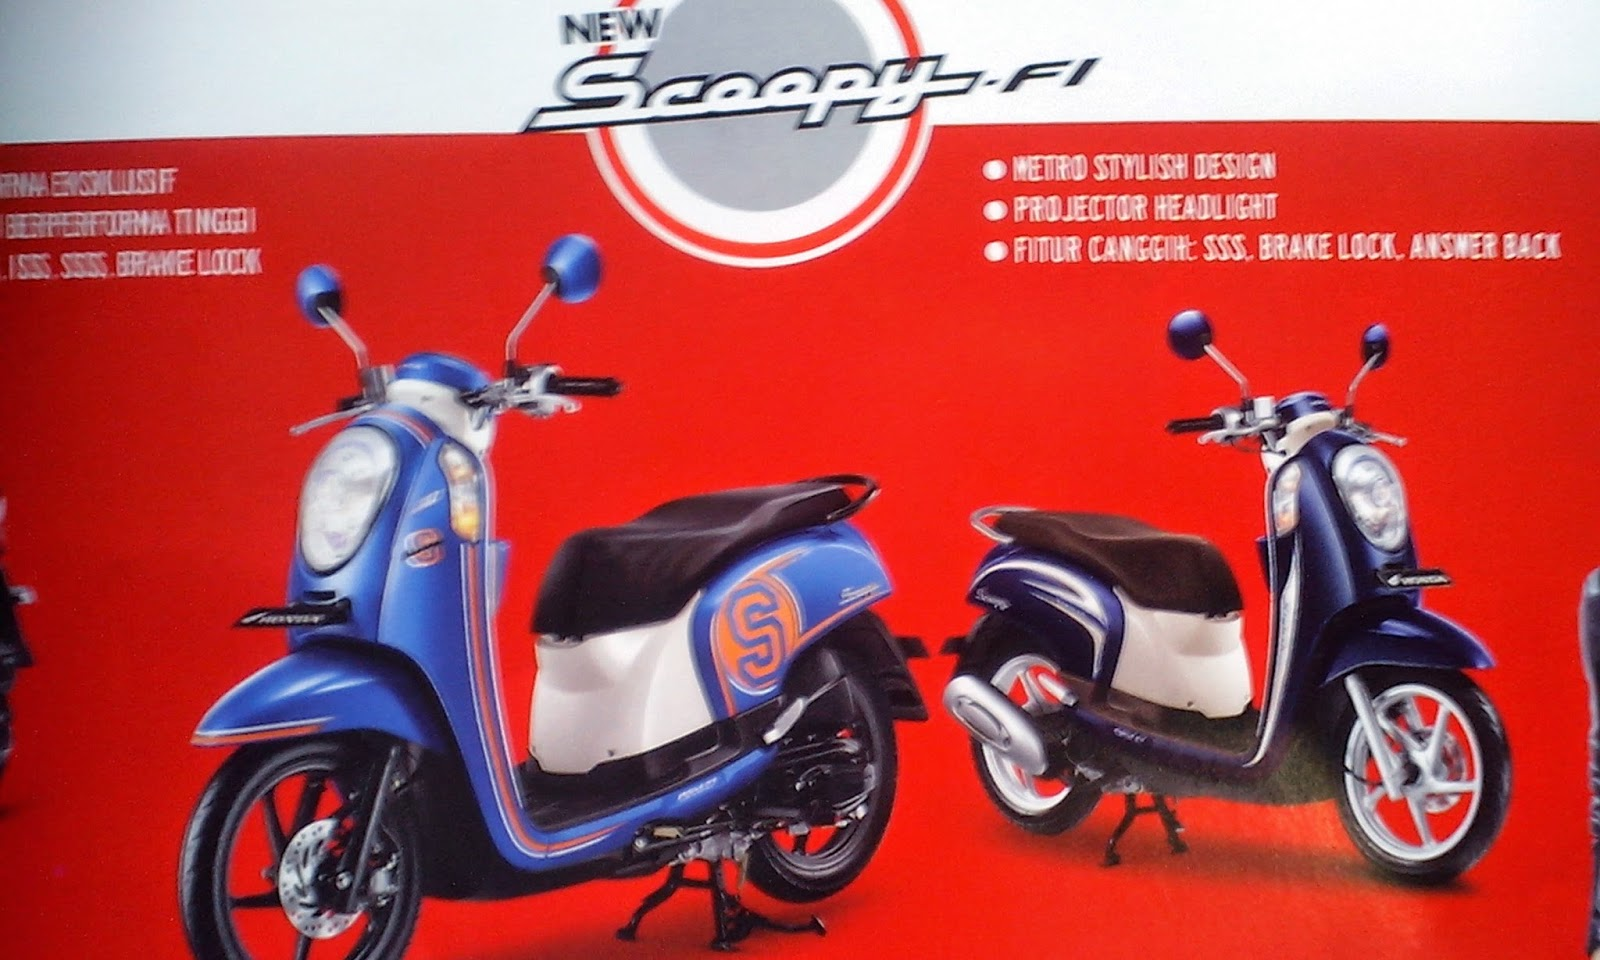 New stylish fi scoopy exclusive photo